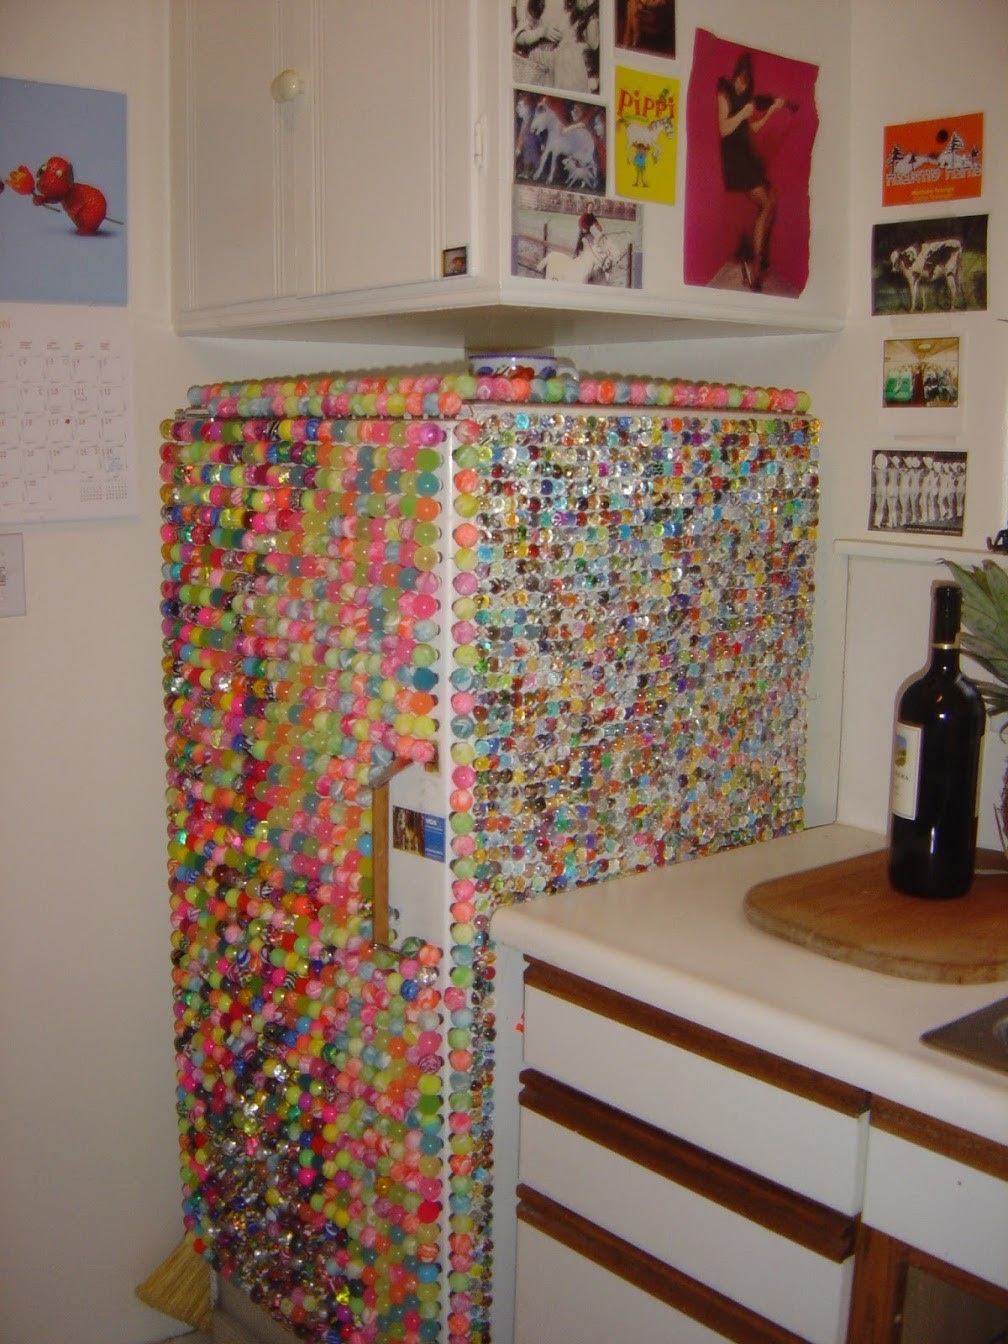 The Superball Fridge in 2002.